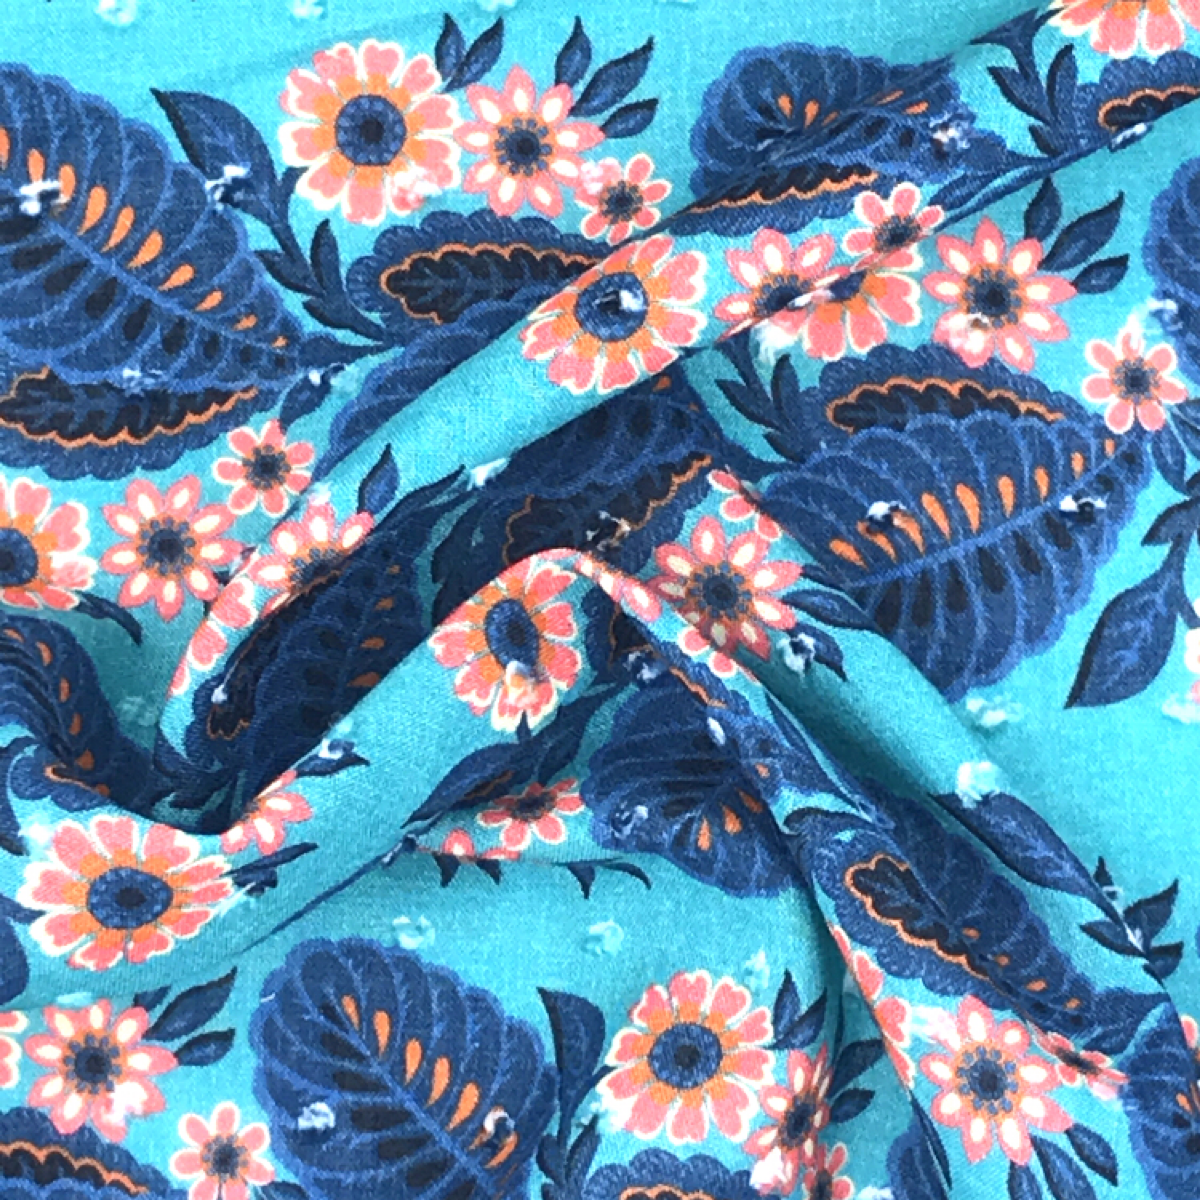 Bright Blue, Navy Blue, Coral and White Tropical Floral Printed Textile by Beach & Body by Clerici Tessuto